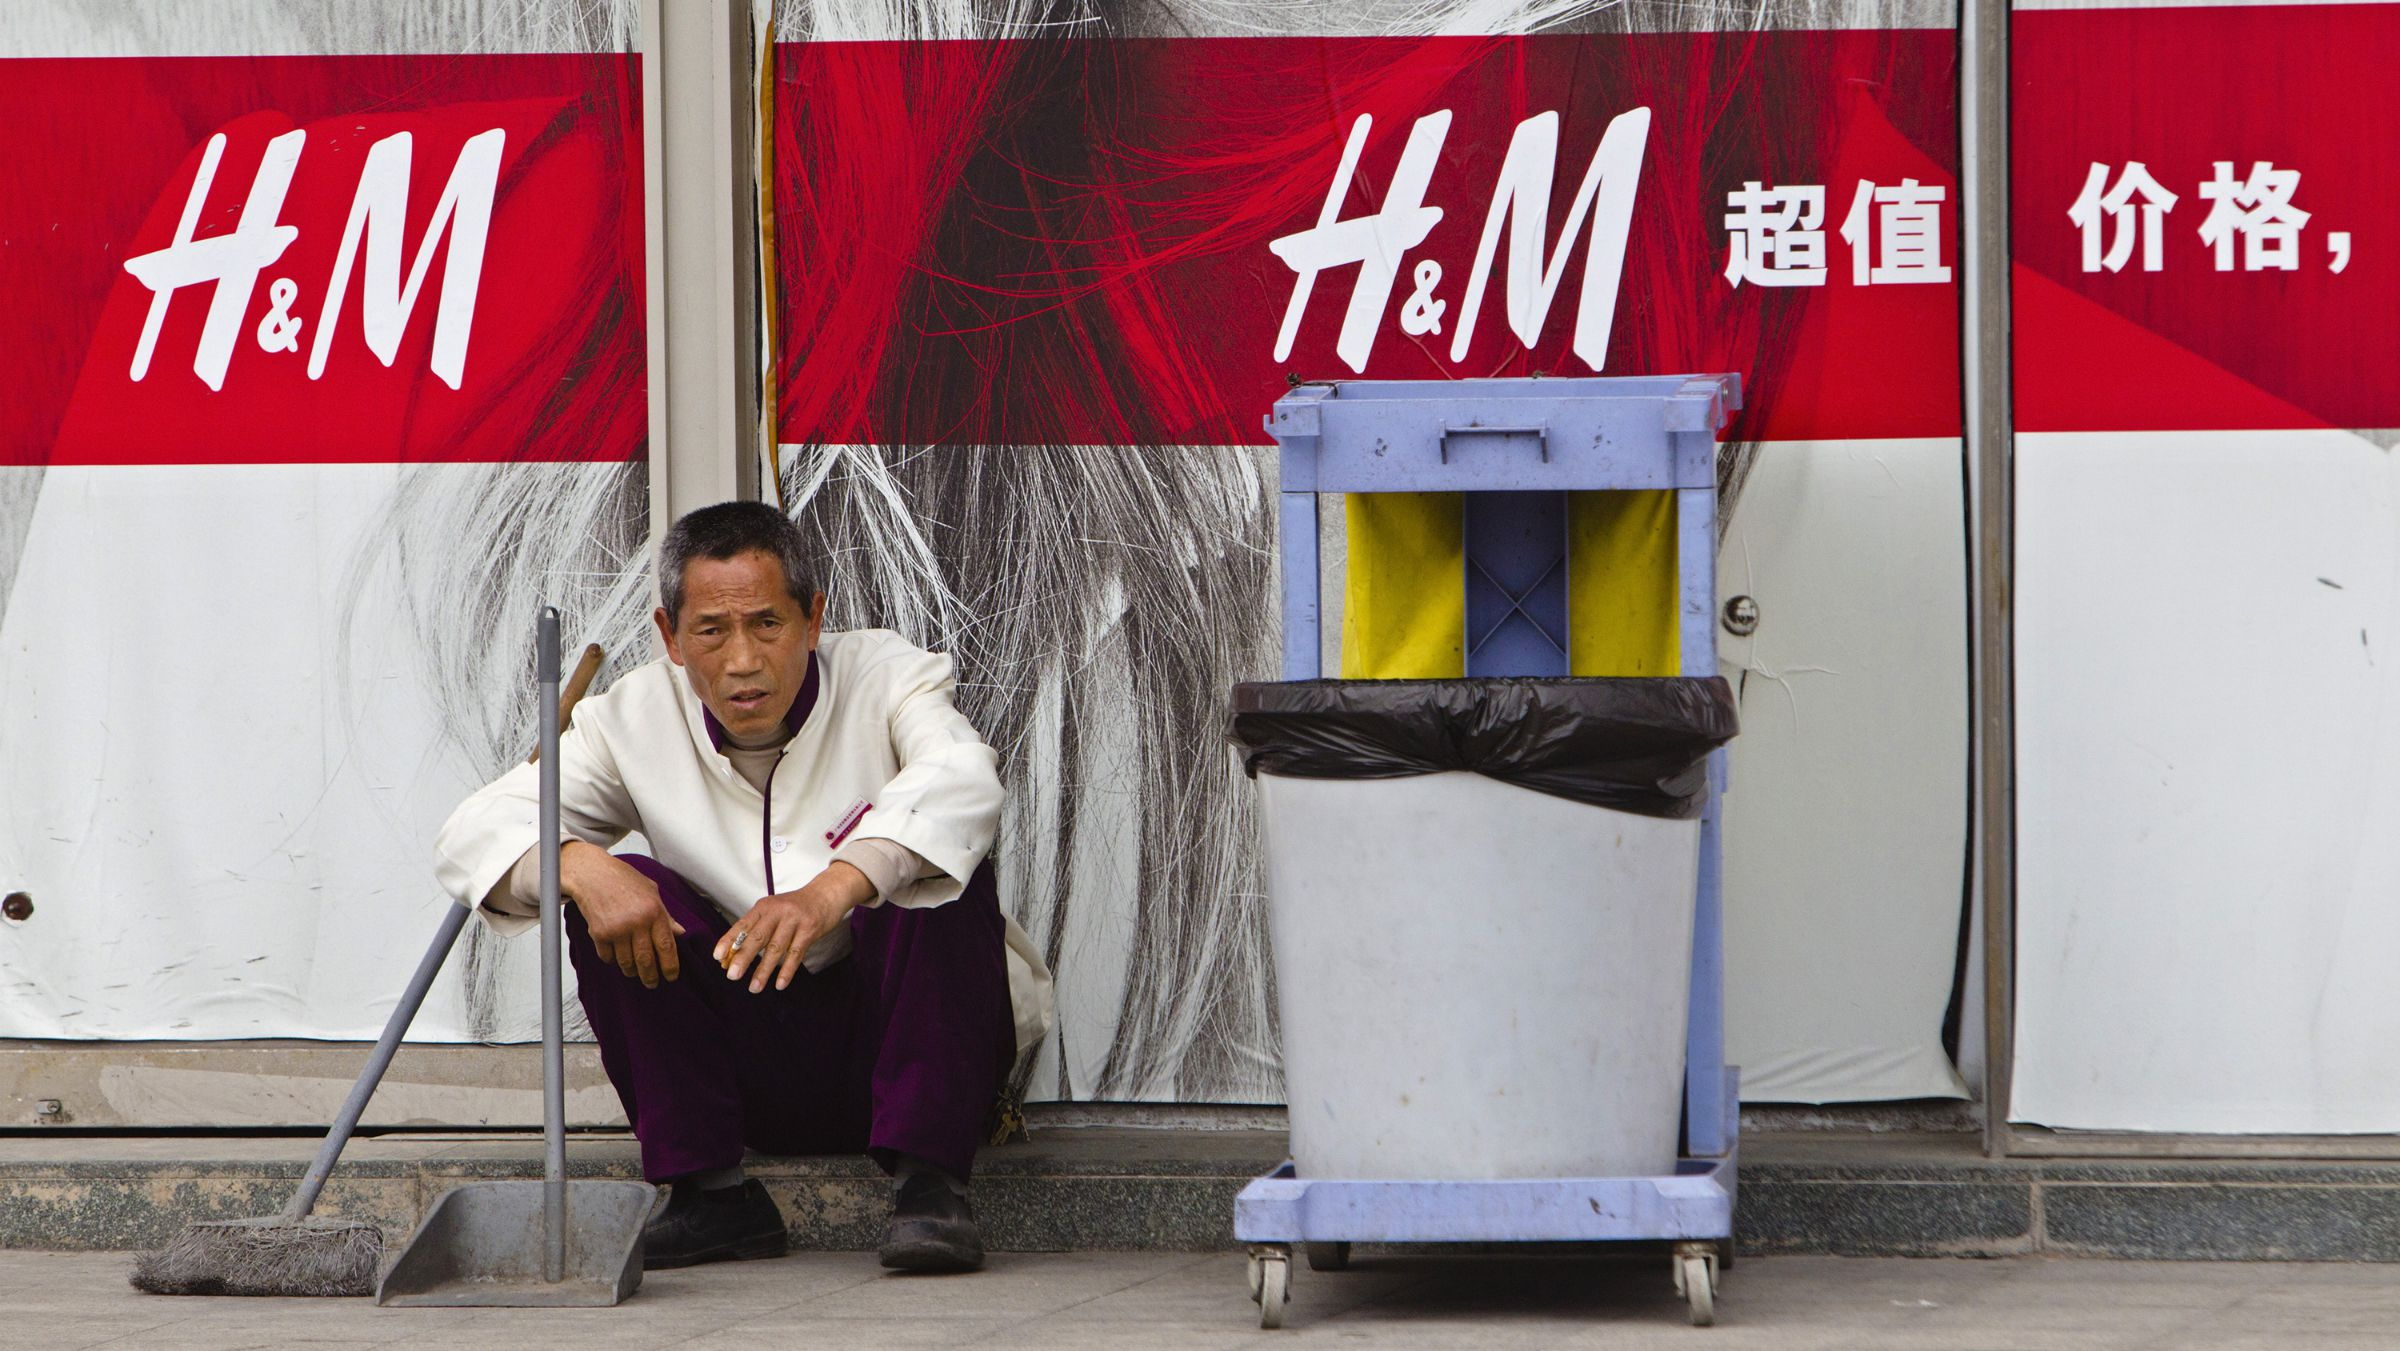 A cleaner sits in front of an H&M store in Guangzhou, China